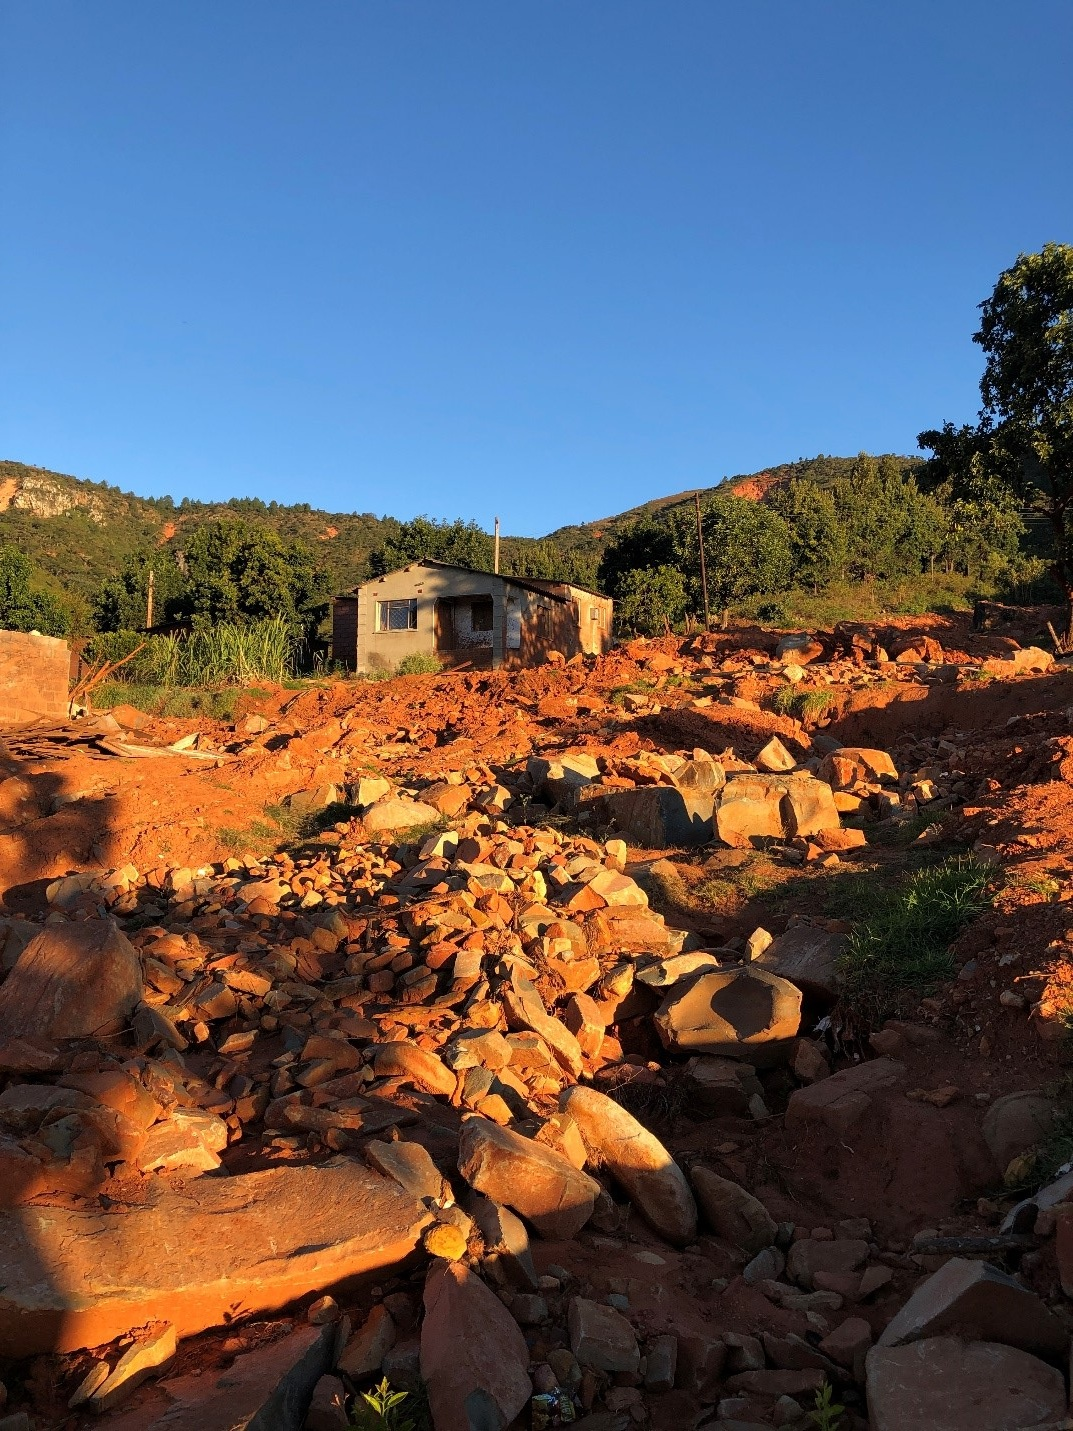 A river of rocks after a landslide caused by Cyclone Idai in Chimanimani, Zimbabwe. The landslides destroyed hundreds of homes in a matter of minutes.